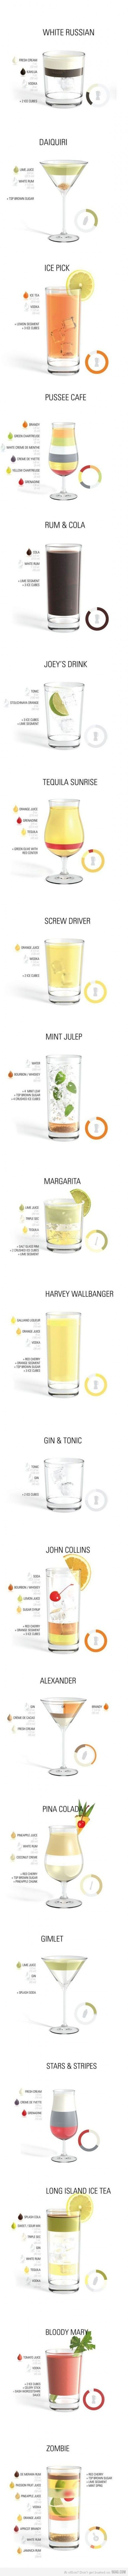 In case you didn't already know! A great chart of common drinks.